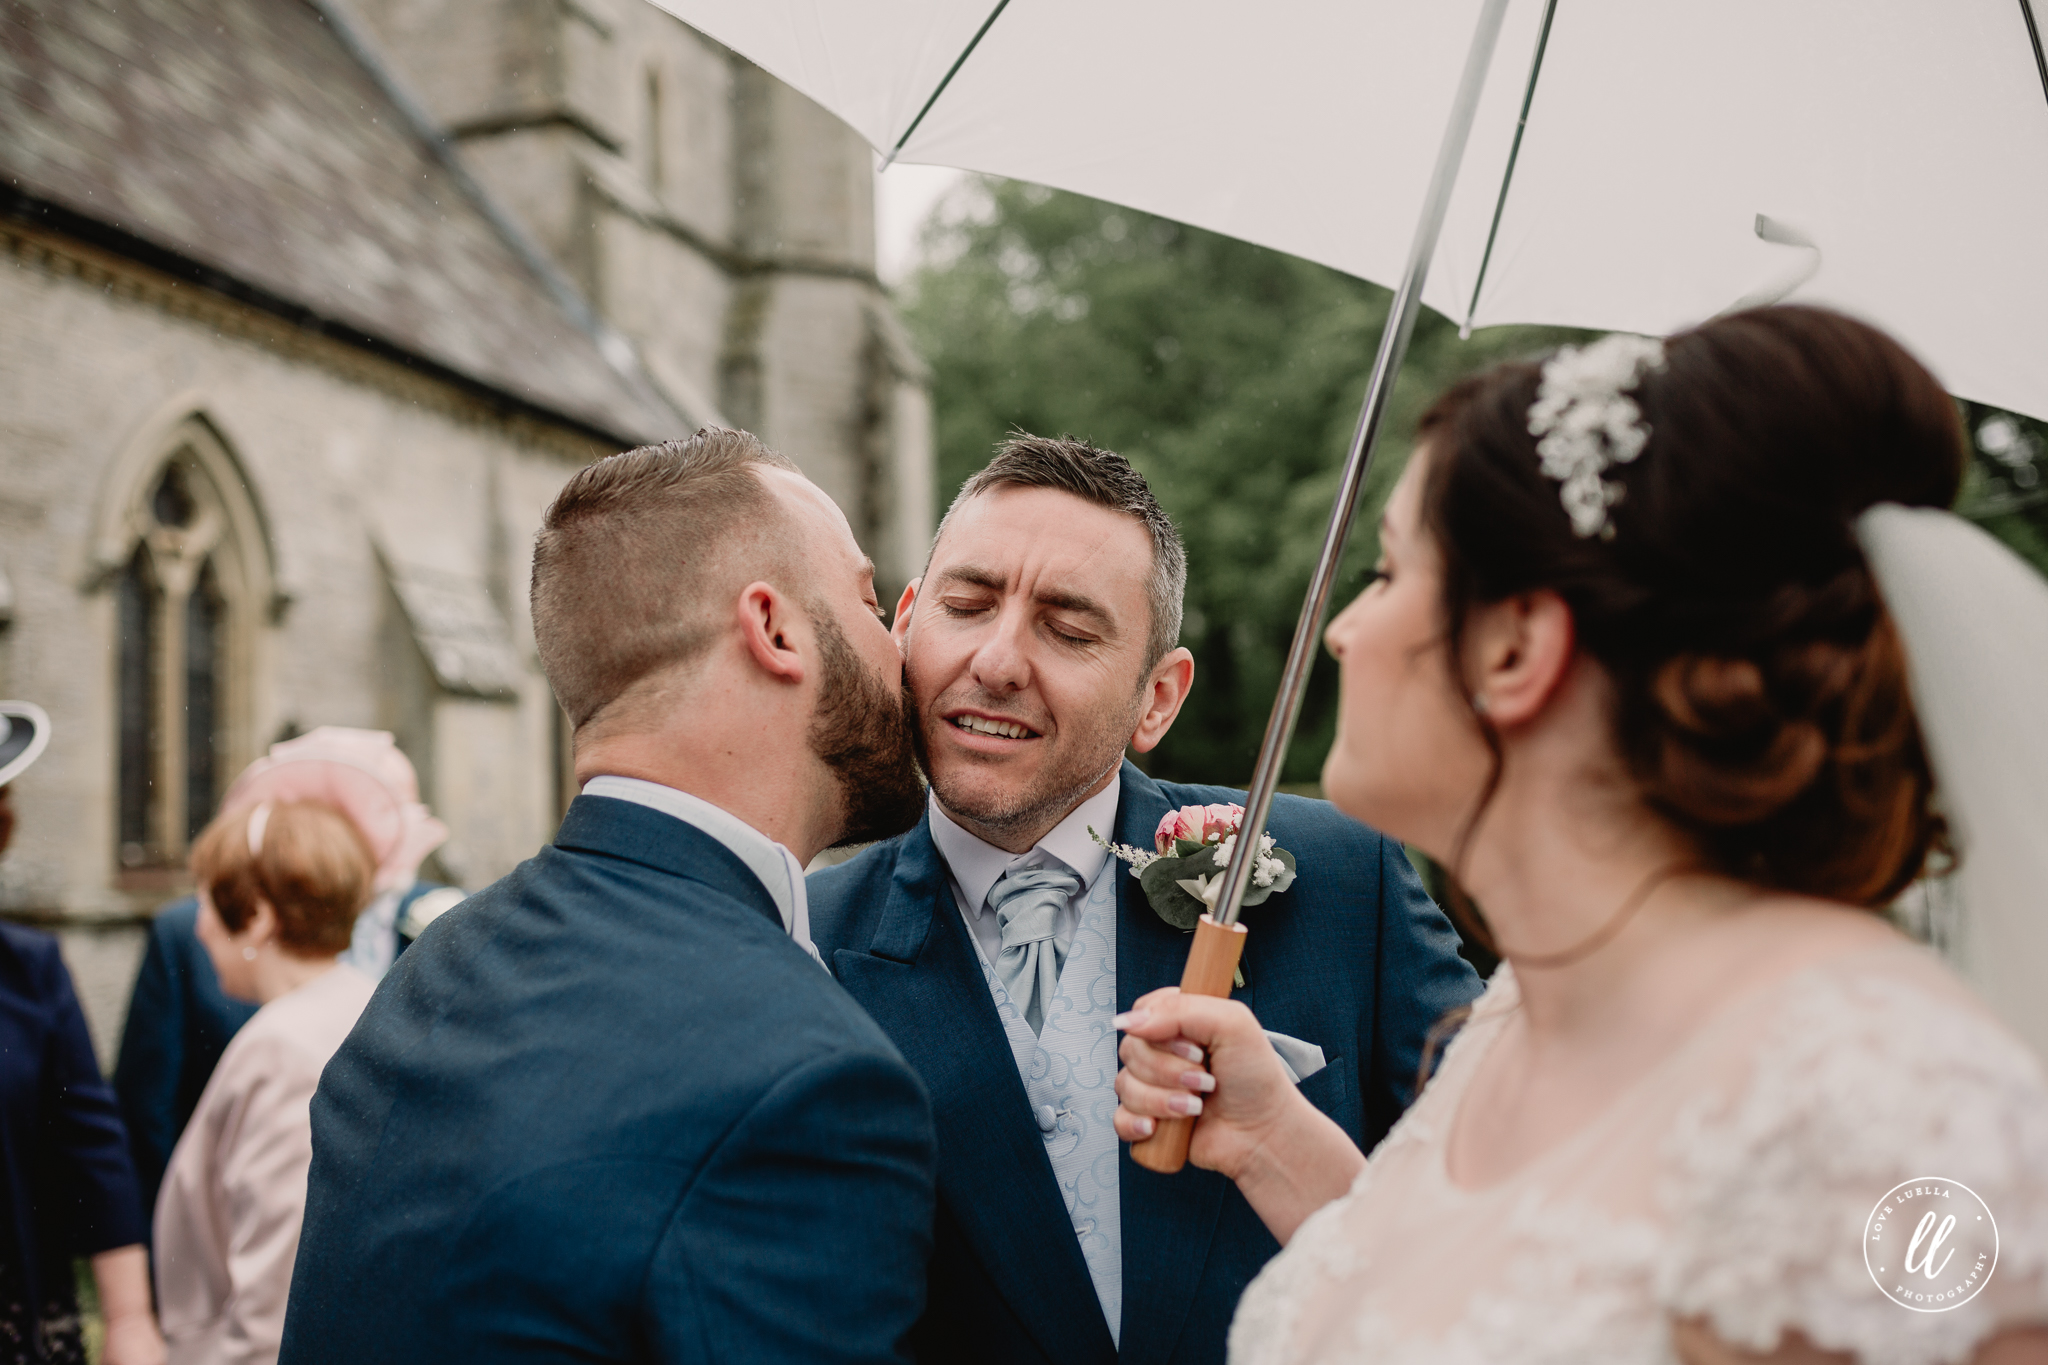 Hugs and kisses for the new Mr and Mrs